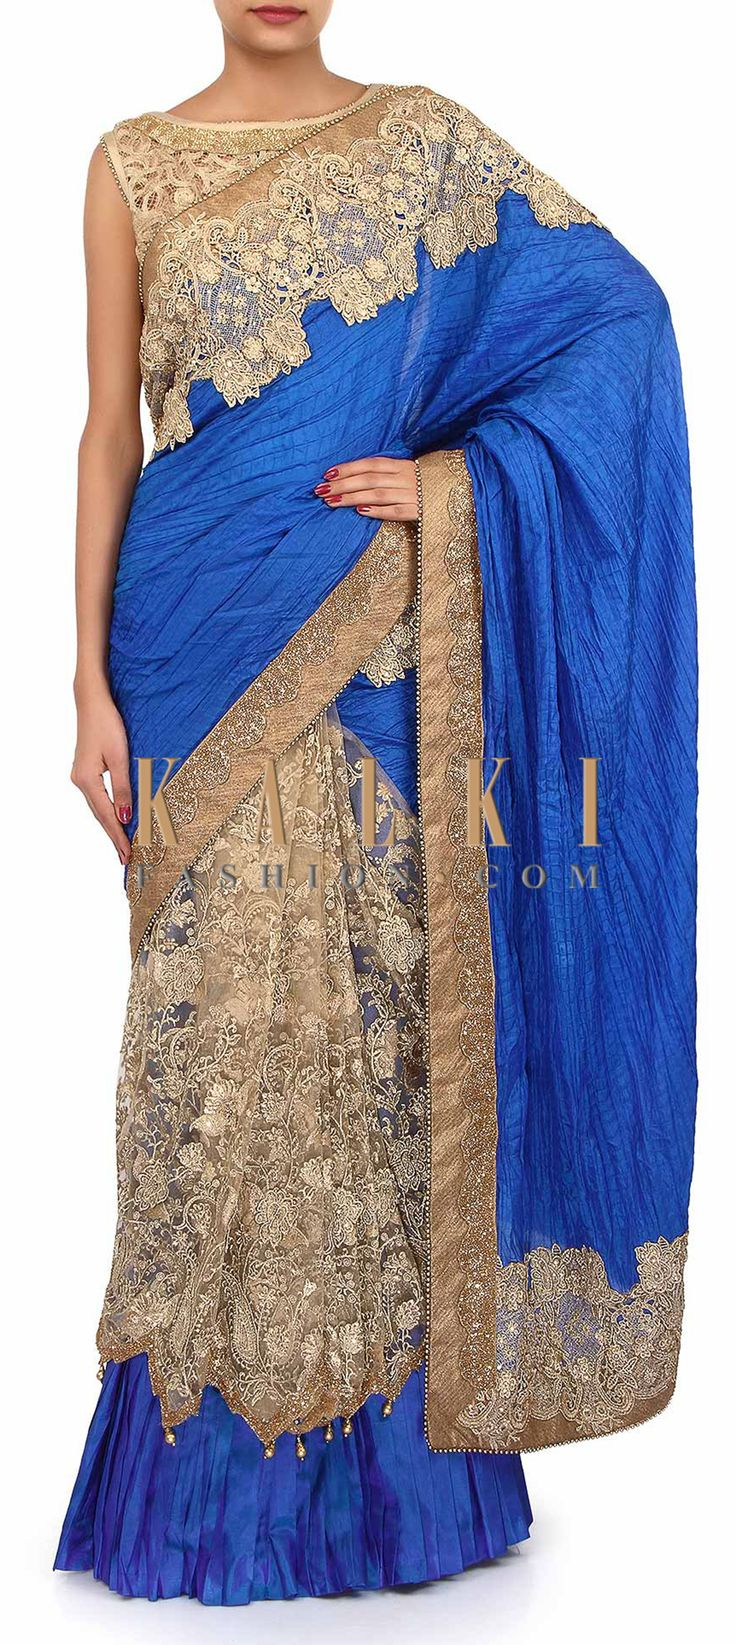 Buy Online from the link below. We ship worldwide (Free Shipping over US$100). Product SKU - 258410. Product Link - http://www.kalkifashion.com/gold-and-blue-lehenga-saree-adorn-in-zari-and-kardana-embroidery-only-on-kalki.html